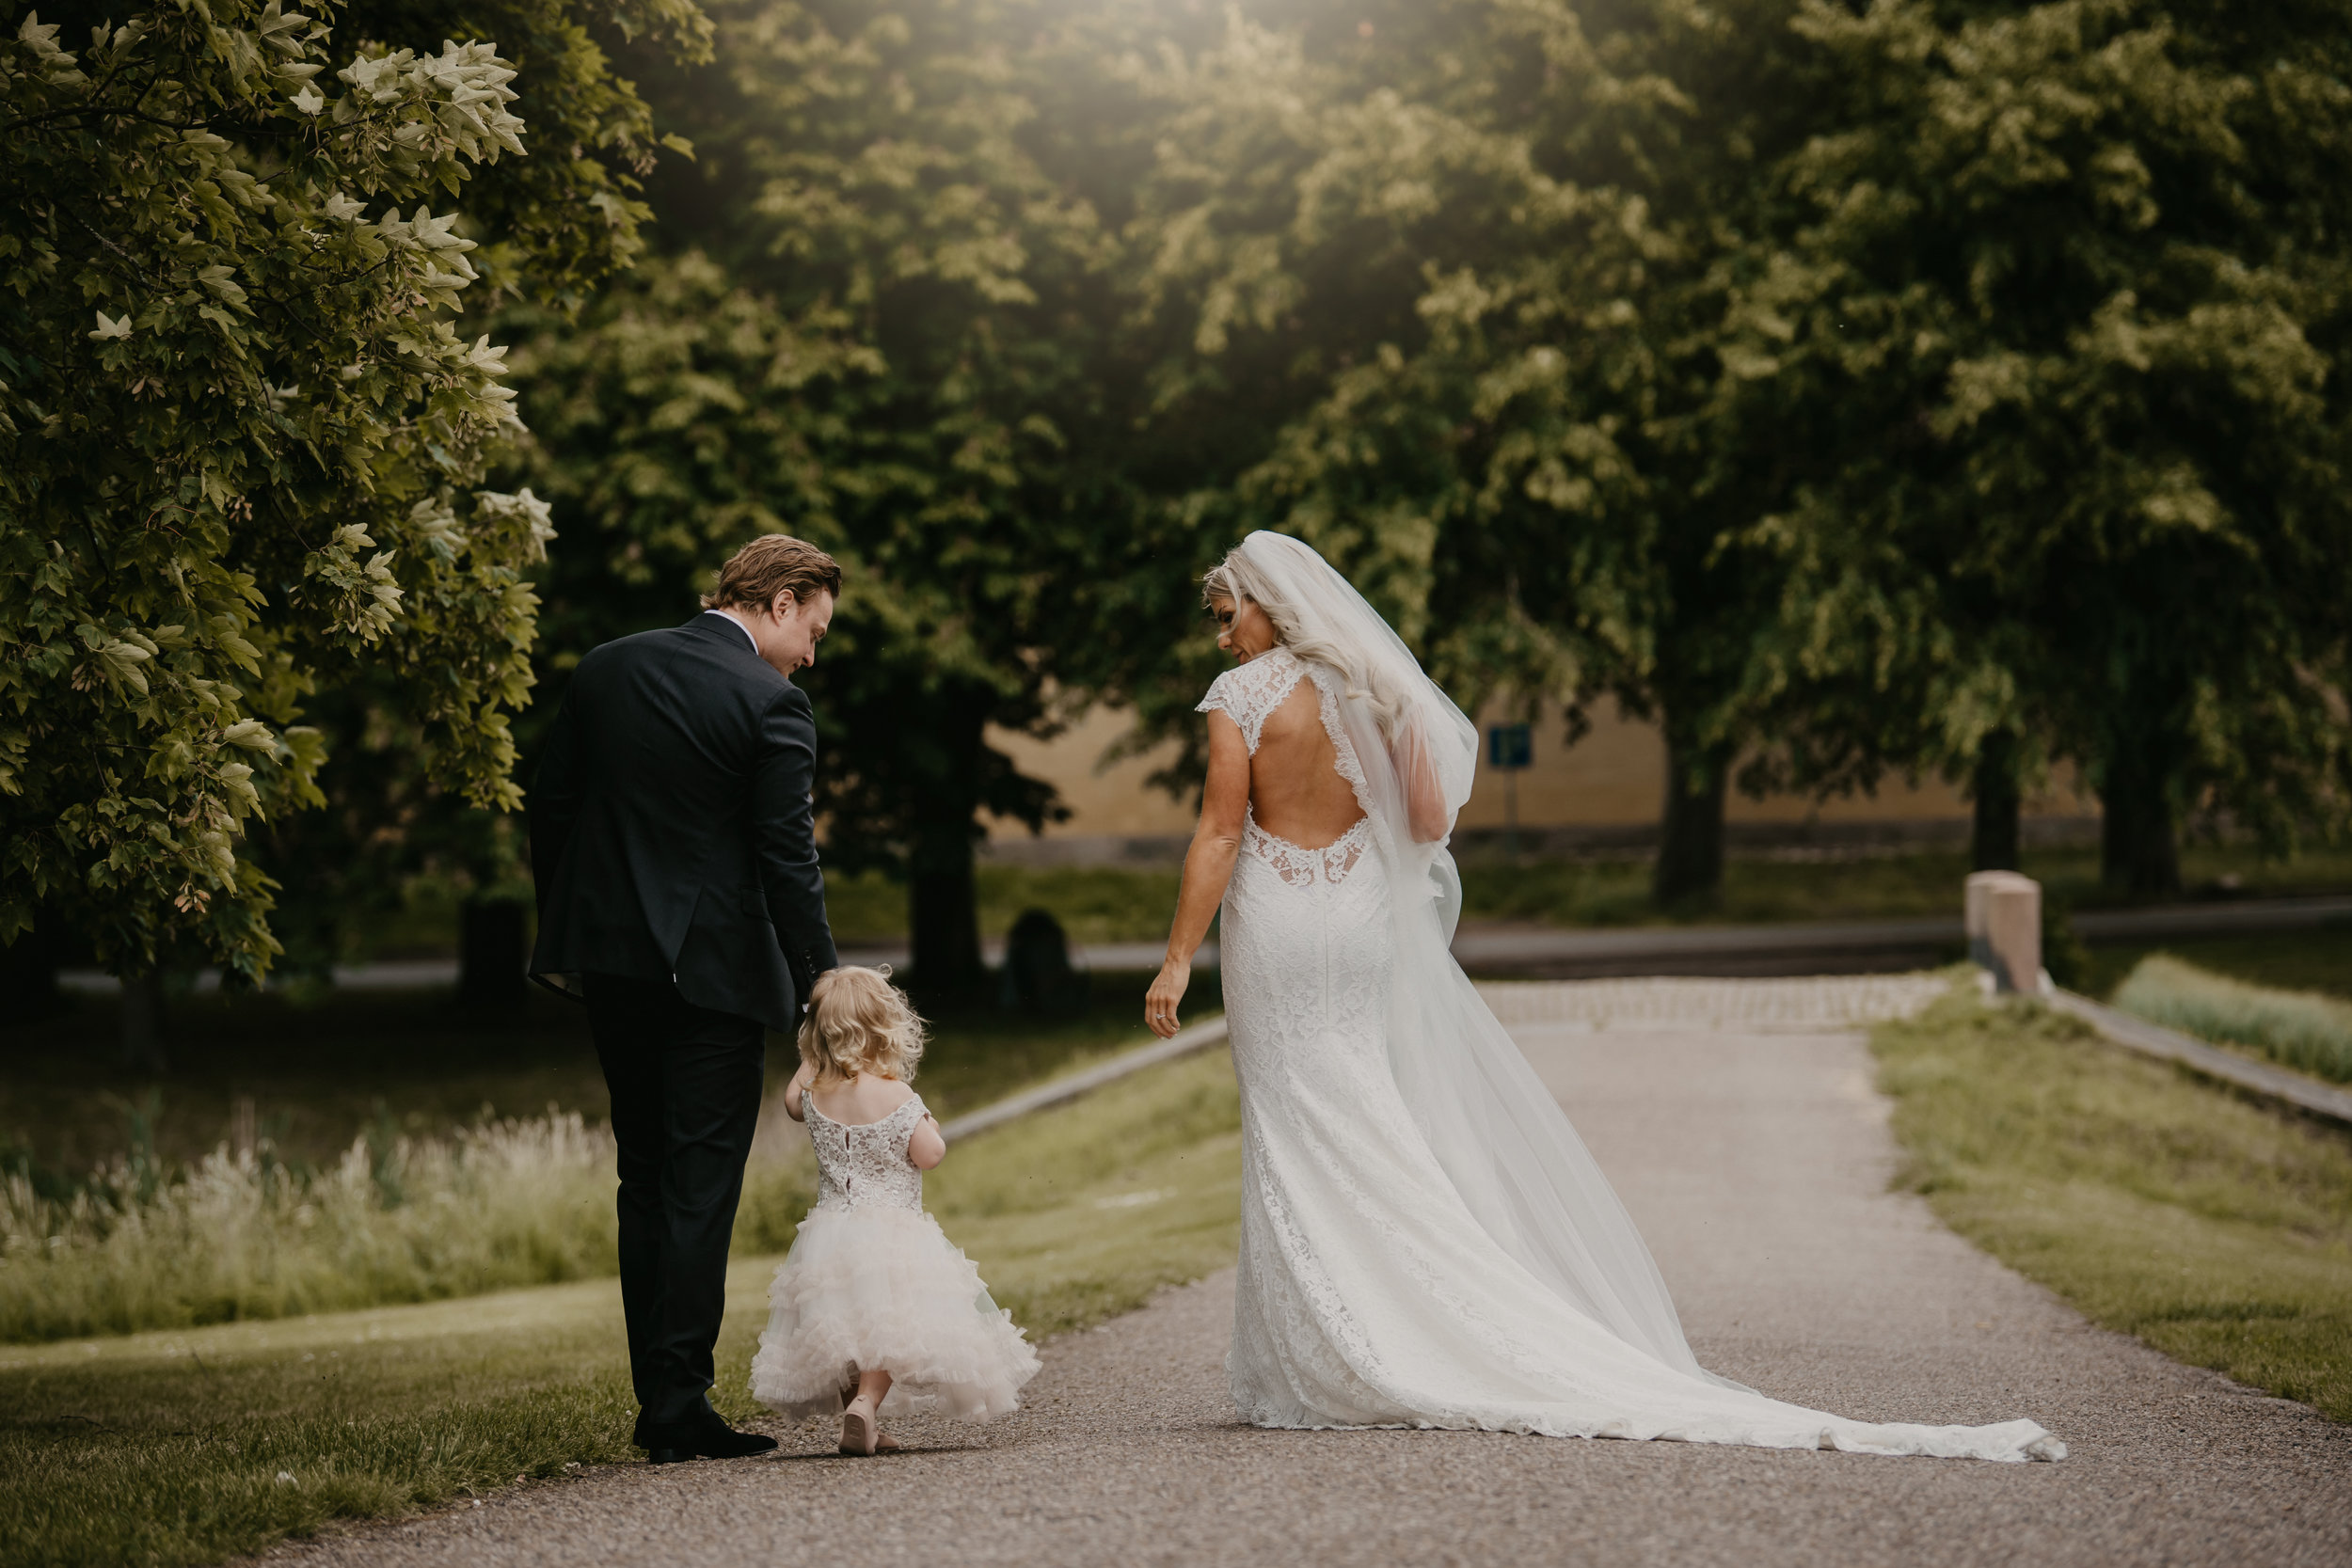 Cecilie and Nickolai, 09.06.19